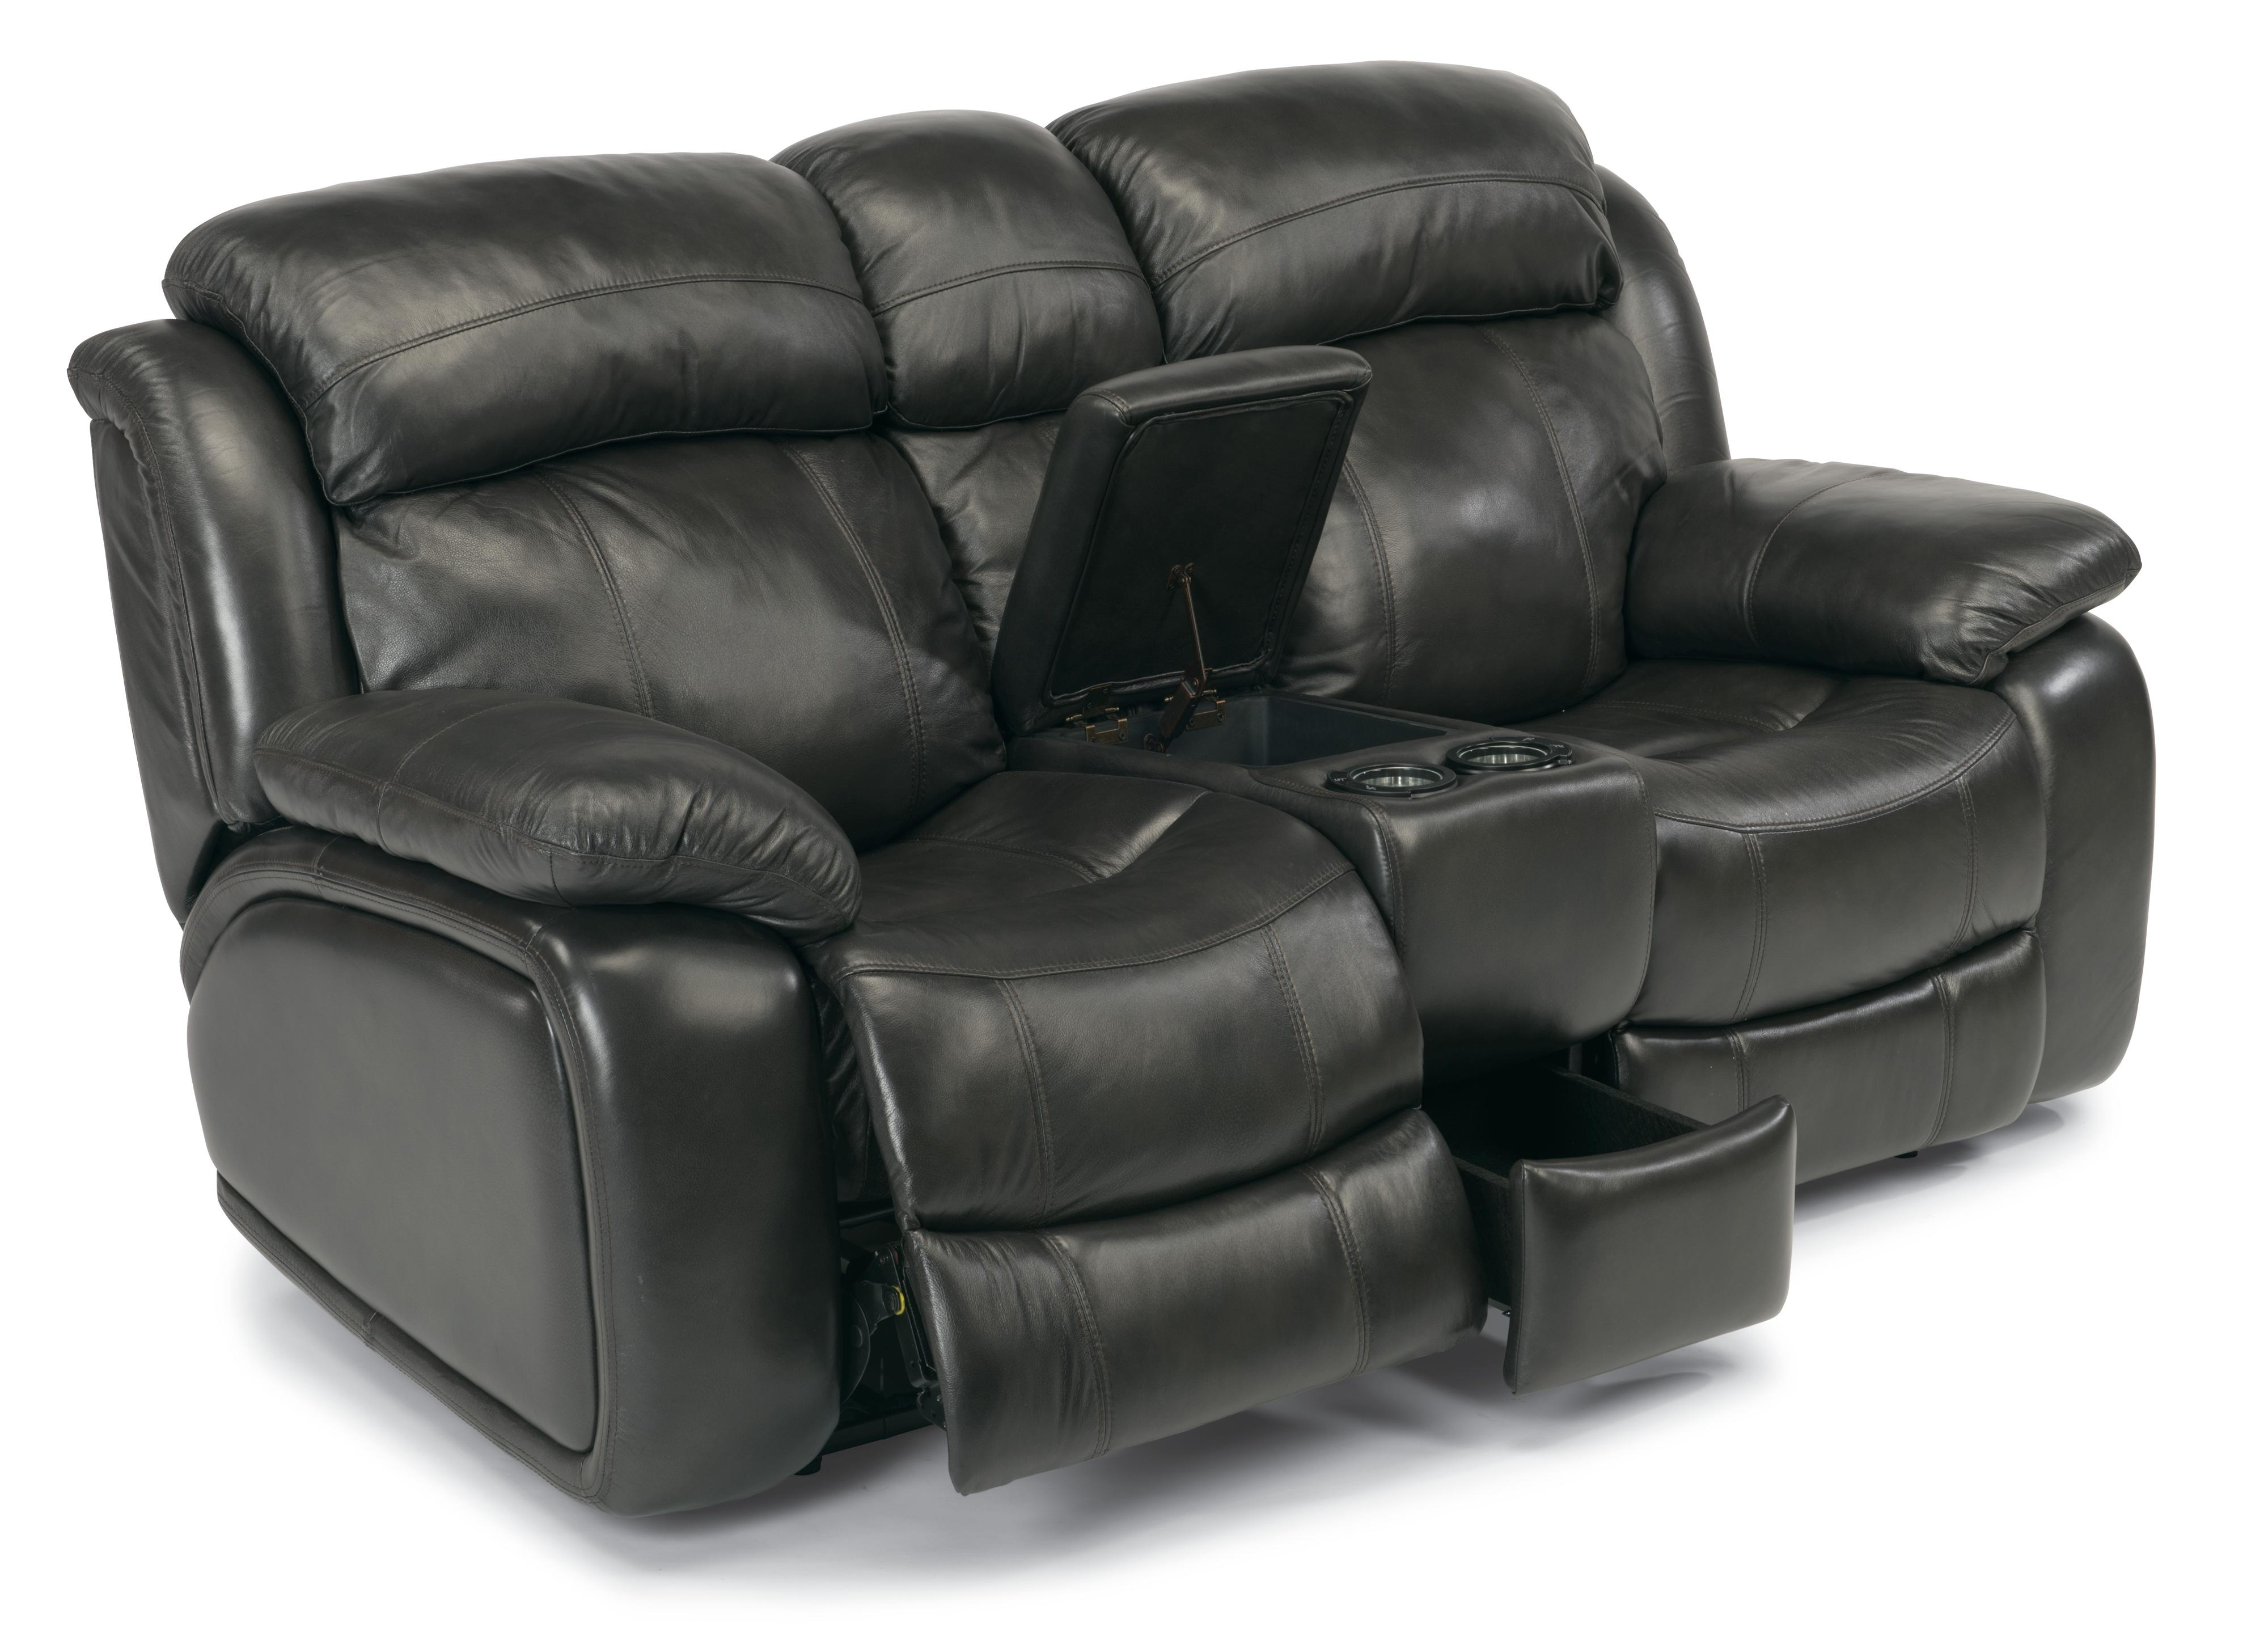 Flexsteel Latitudes-Como Power Reclining Loveseat w/ Console - Item Number: 1409-604P